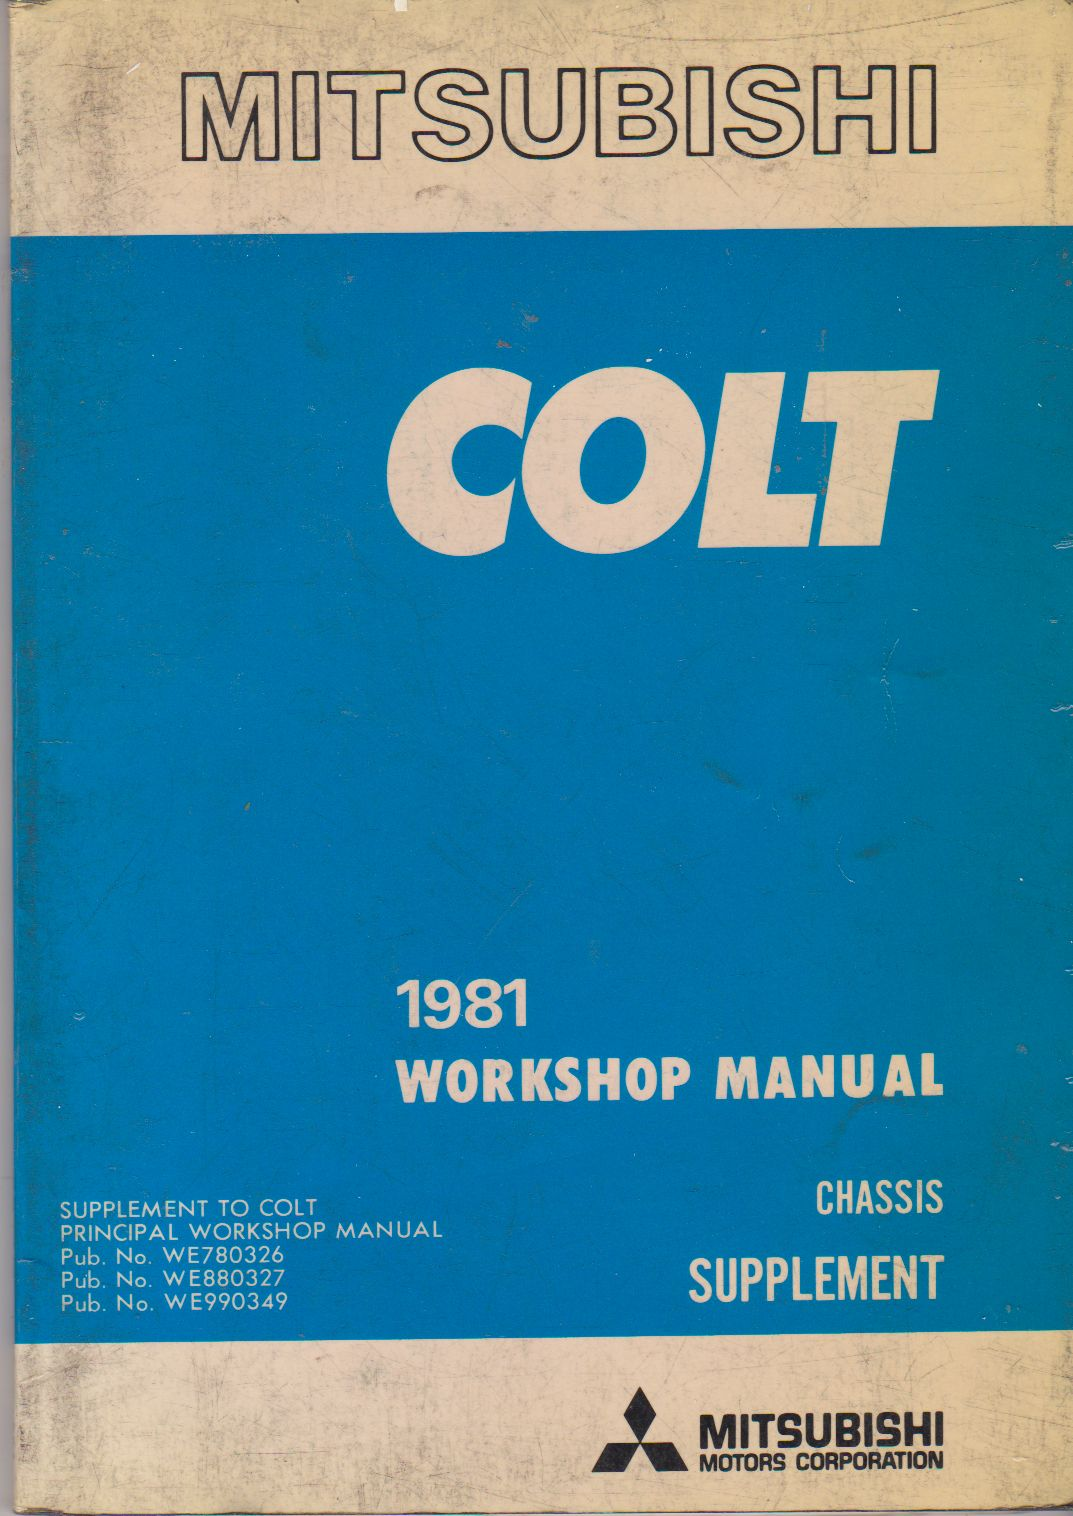 1981 Mitsuishi Colt Chassis Workshop Manual Supplement